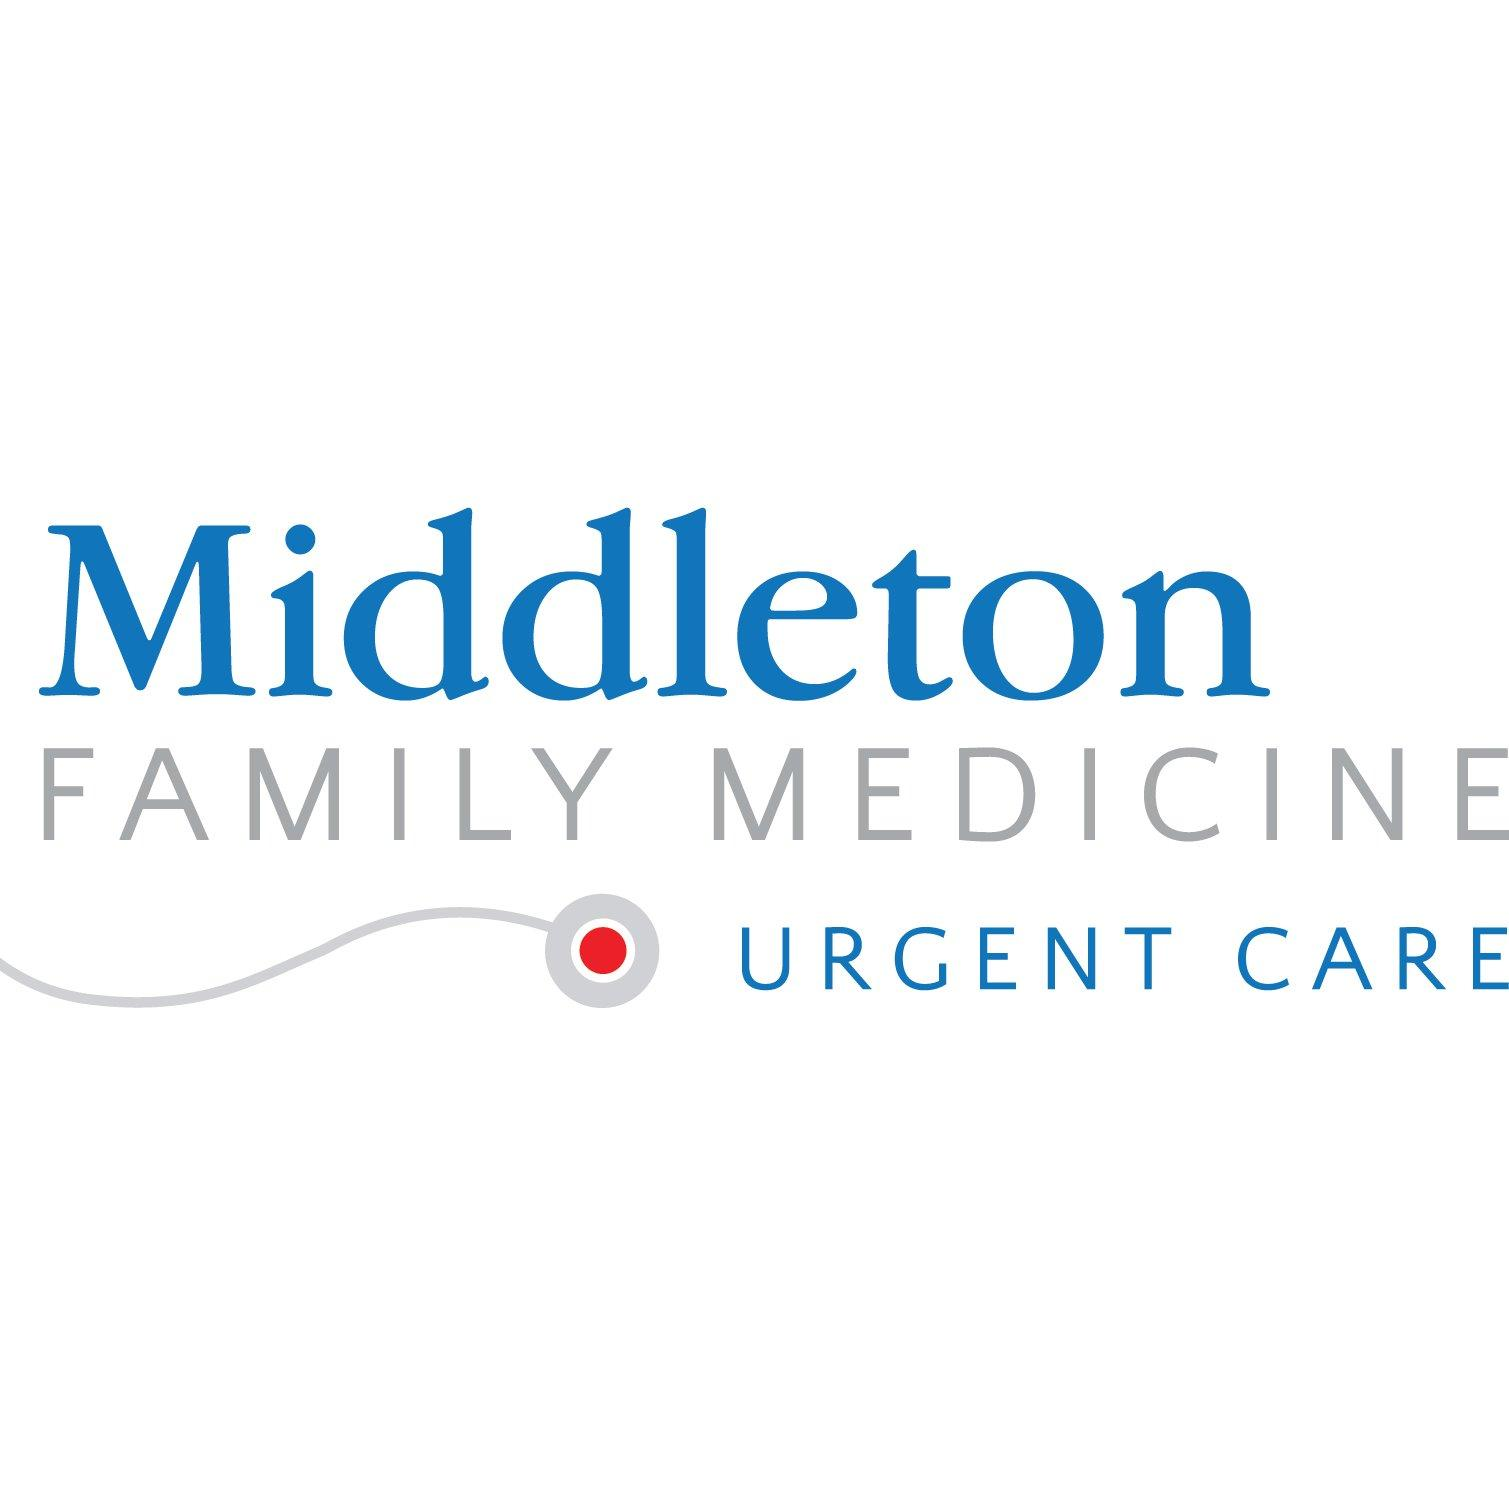 Middleton Family Medicine